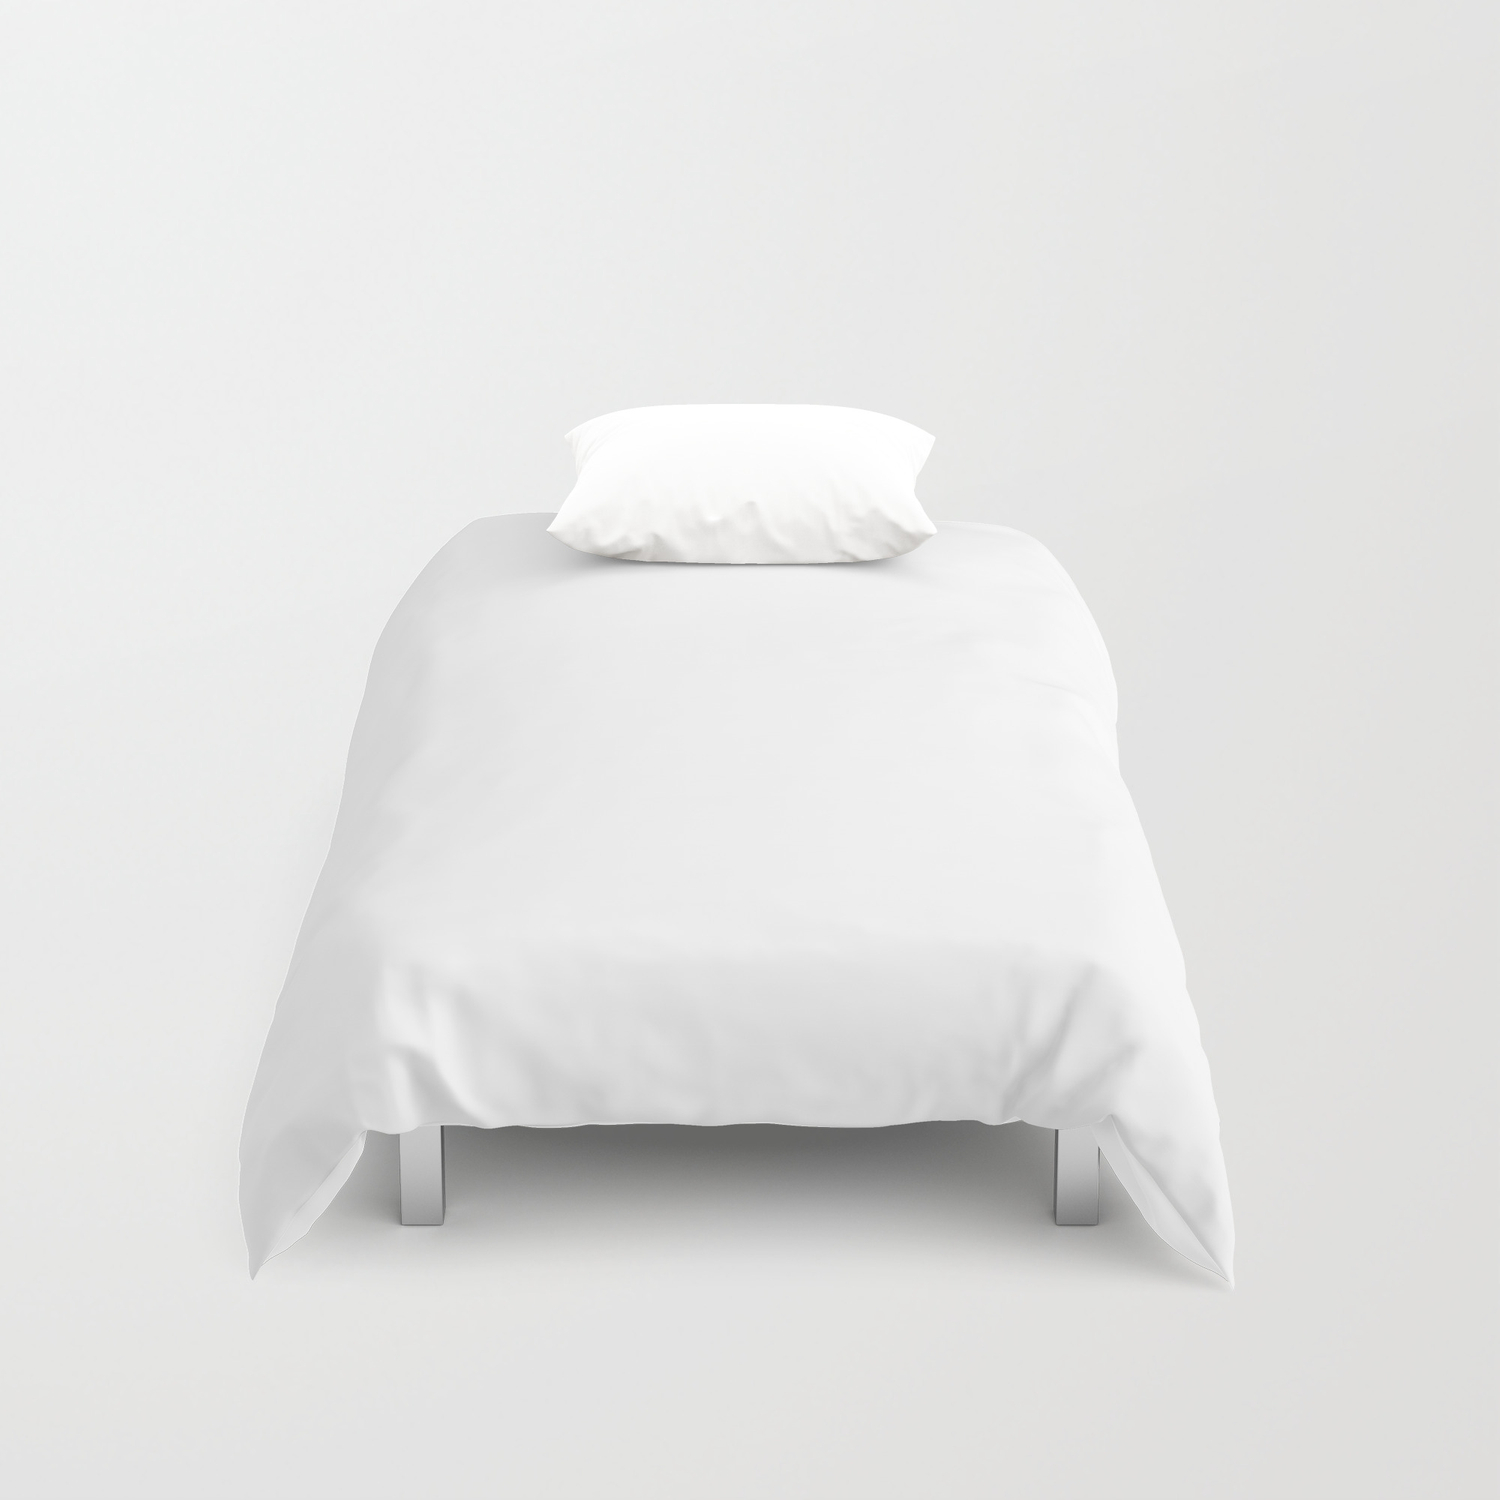 Plain White Simple Solid Color All Over Print Duvet Cover By